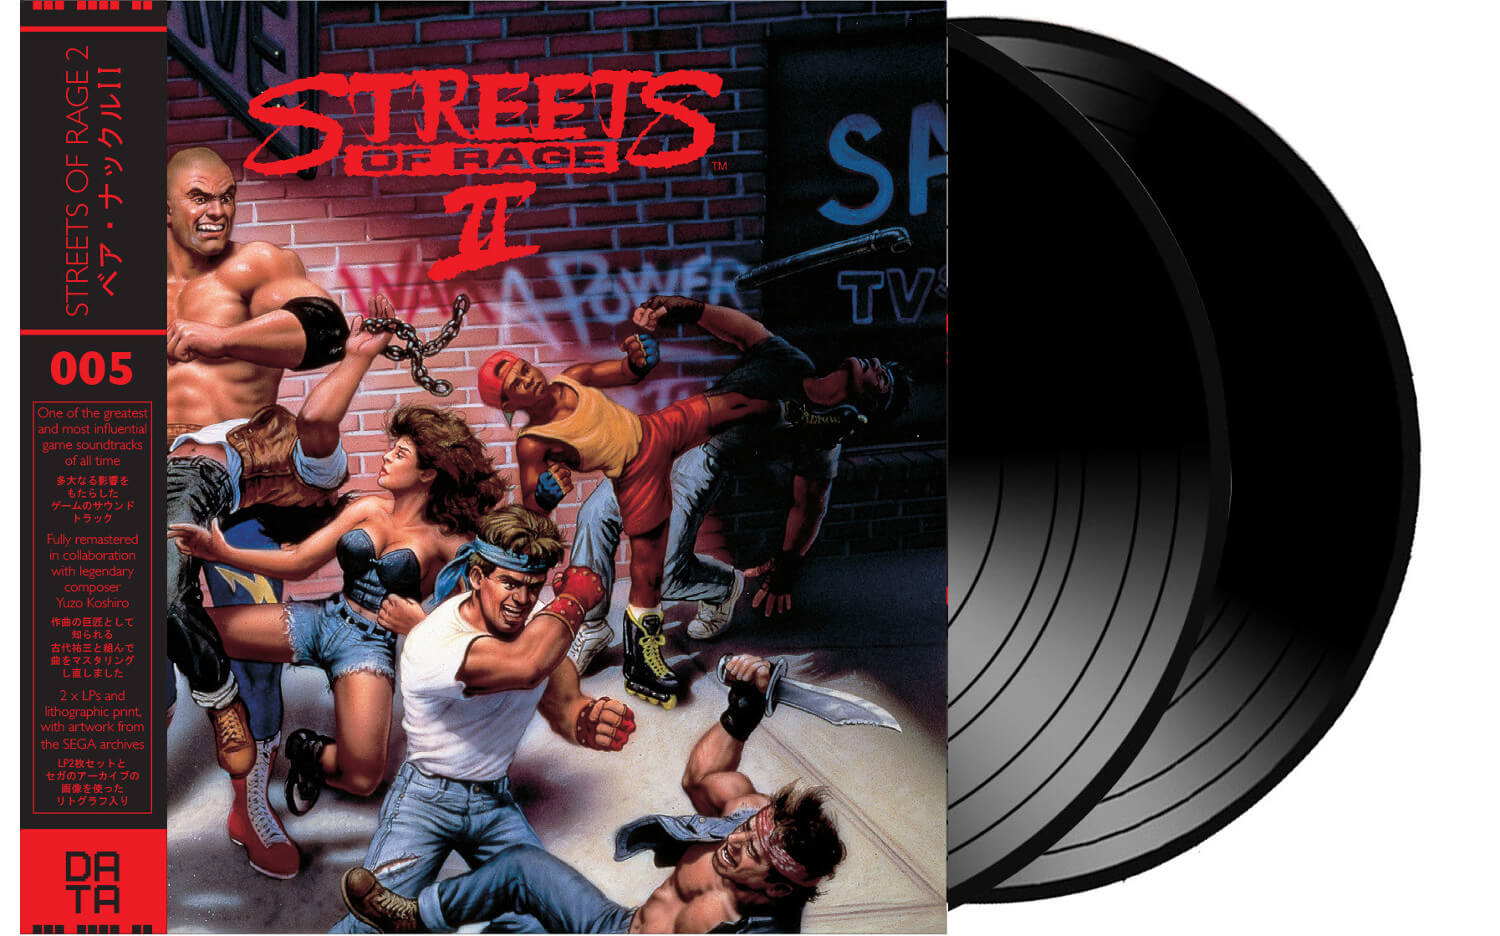 Vinil do Streets of Rage 2